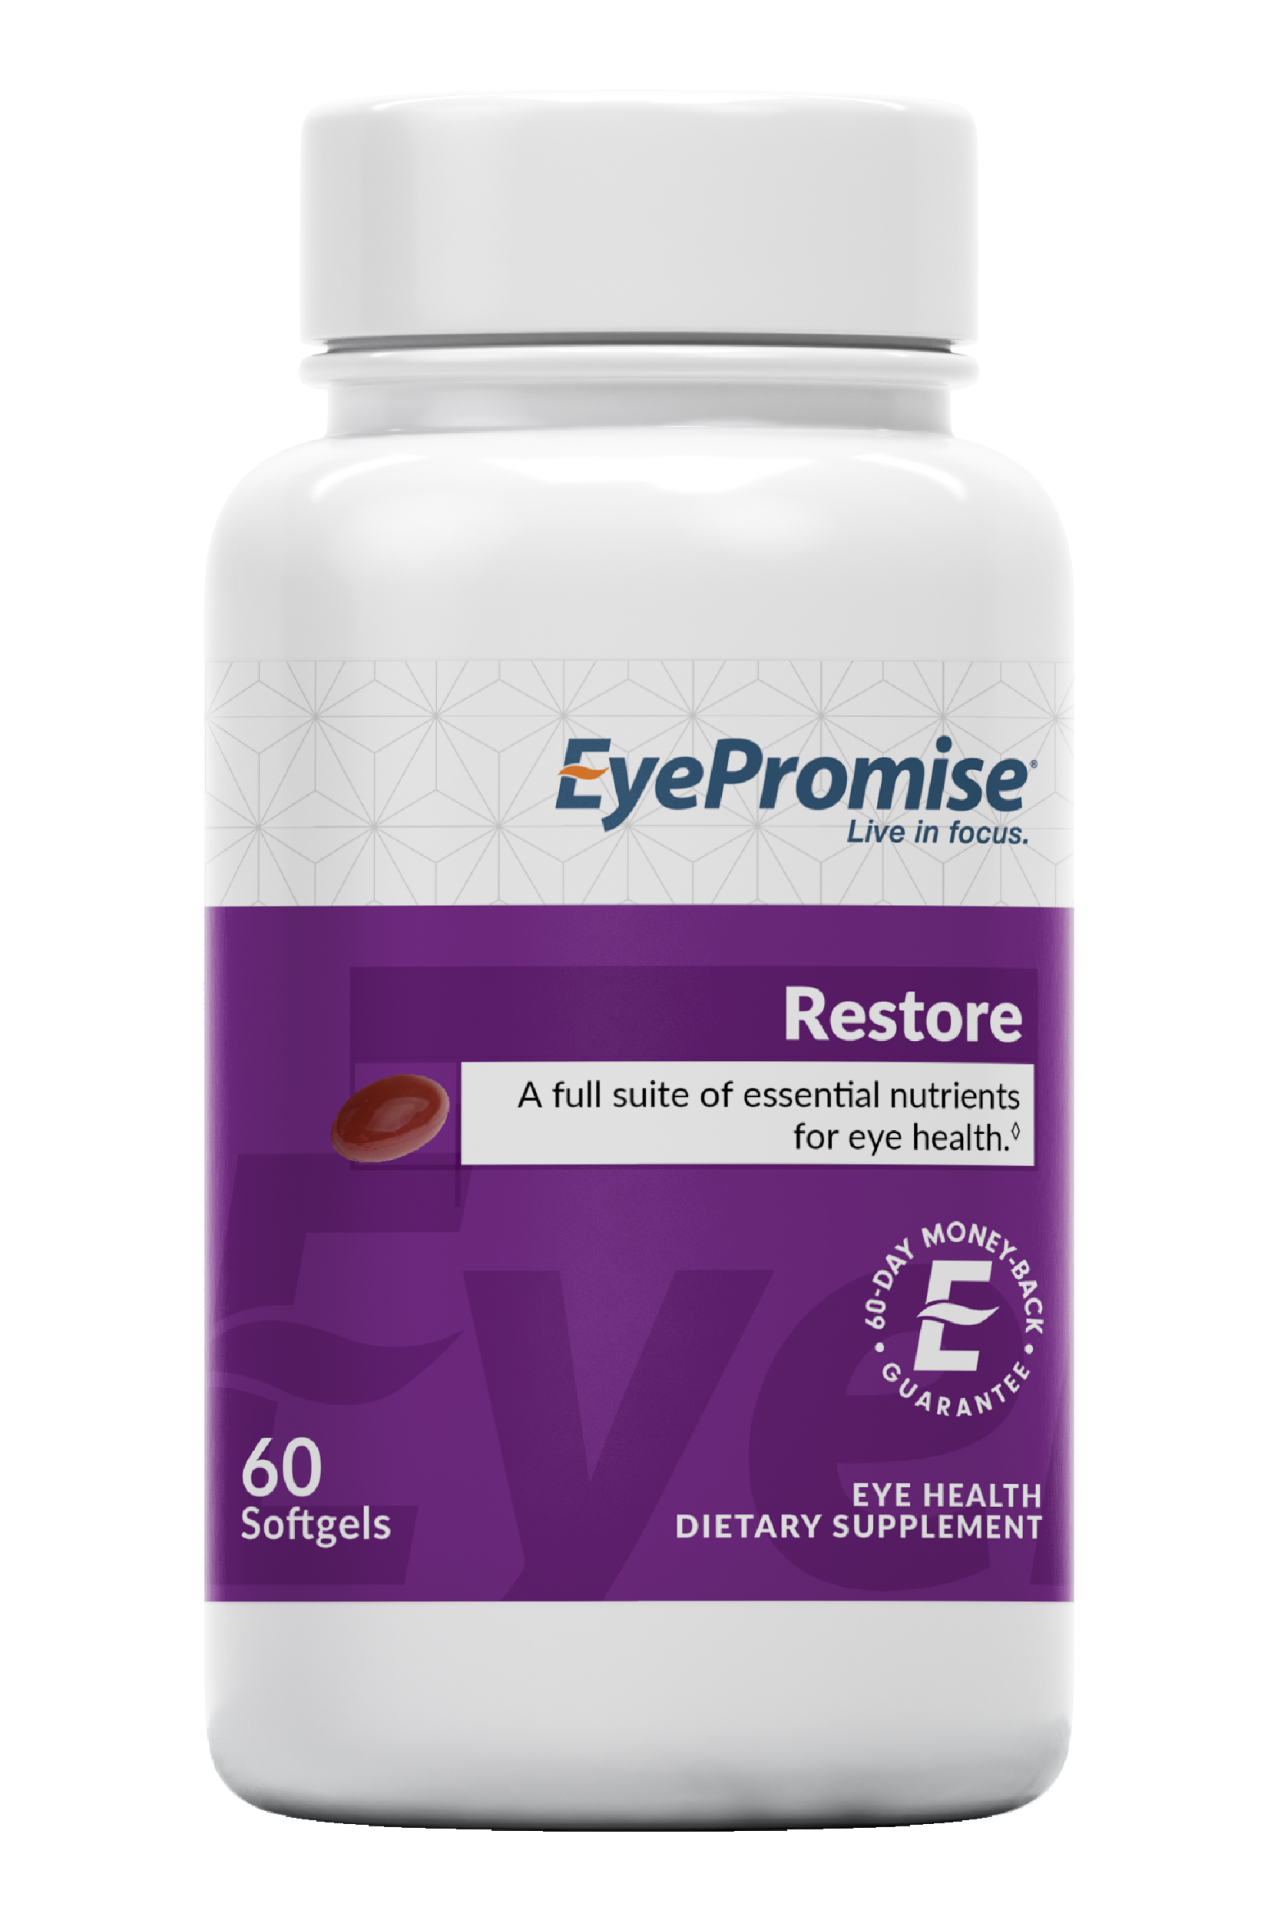 Restore-Bottle-EyePromise